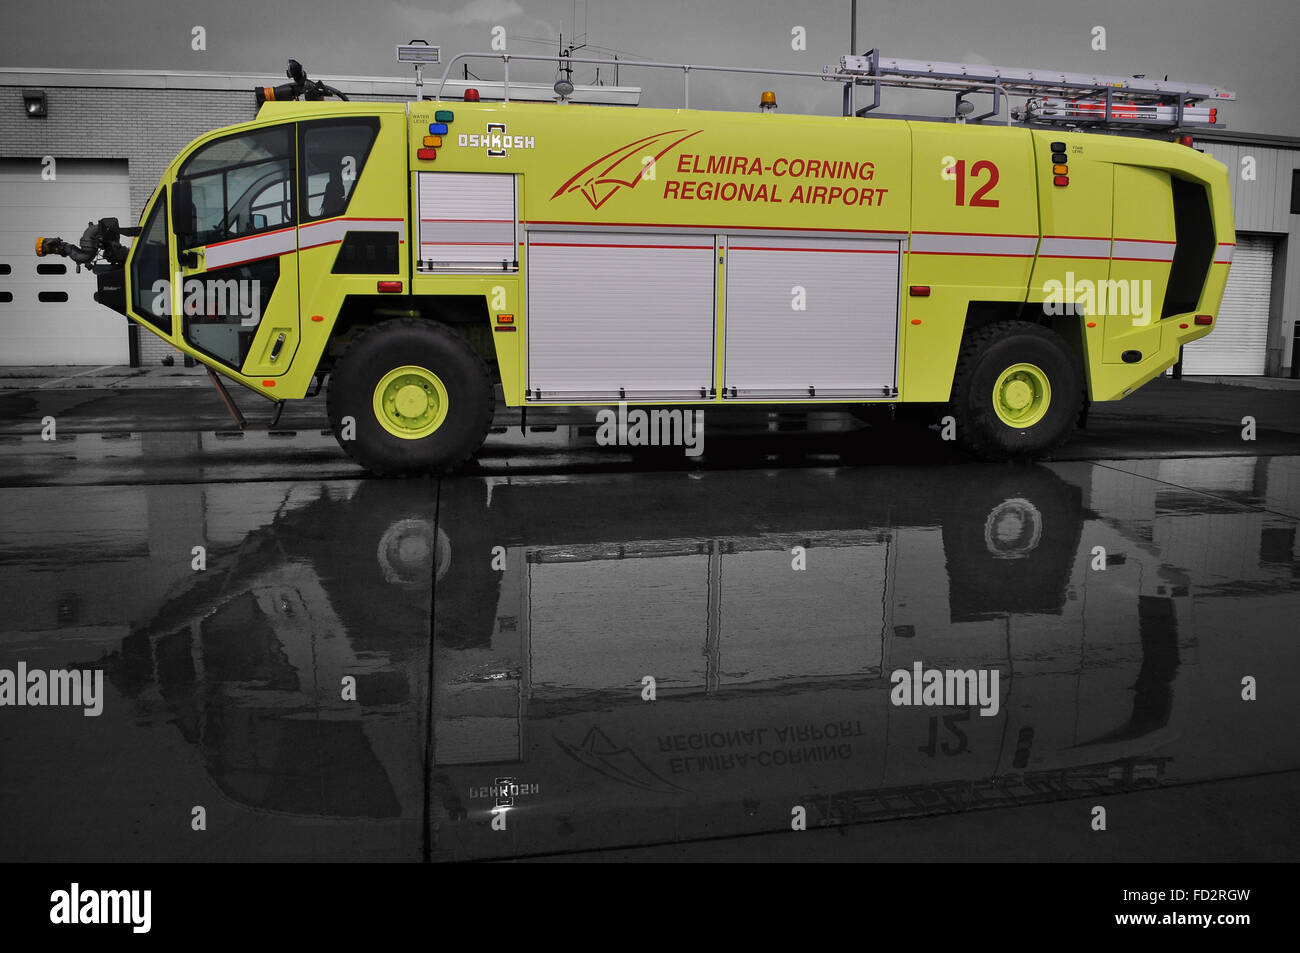 Horseheads, NY, USA - September 2, 2015 - Elmira Corning Regional Airport, Crash/Fire Rescue Trucks - Stock Image